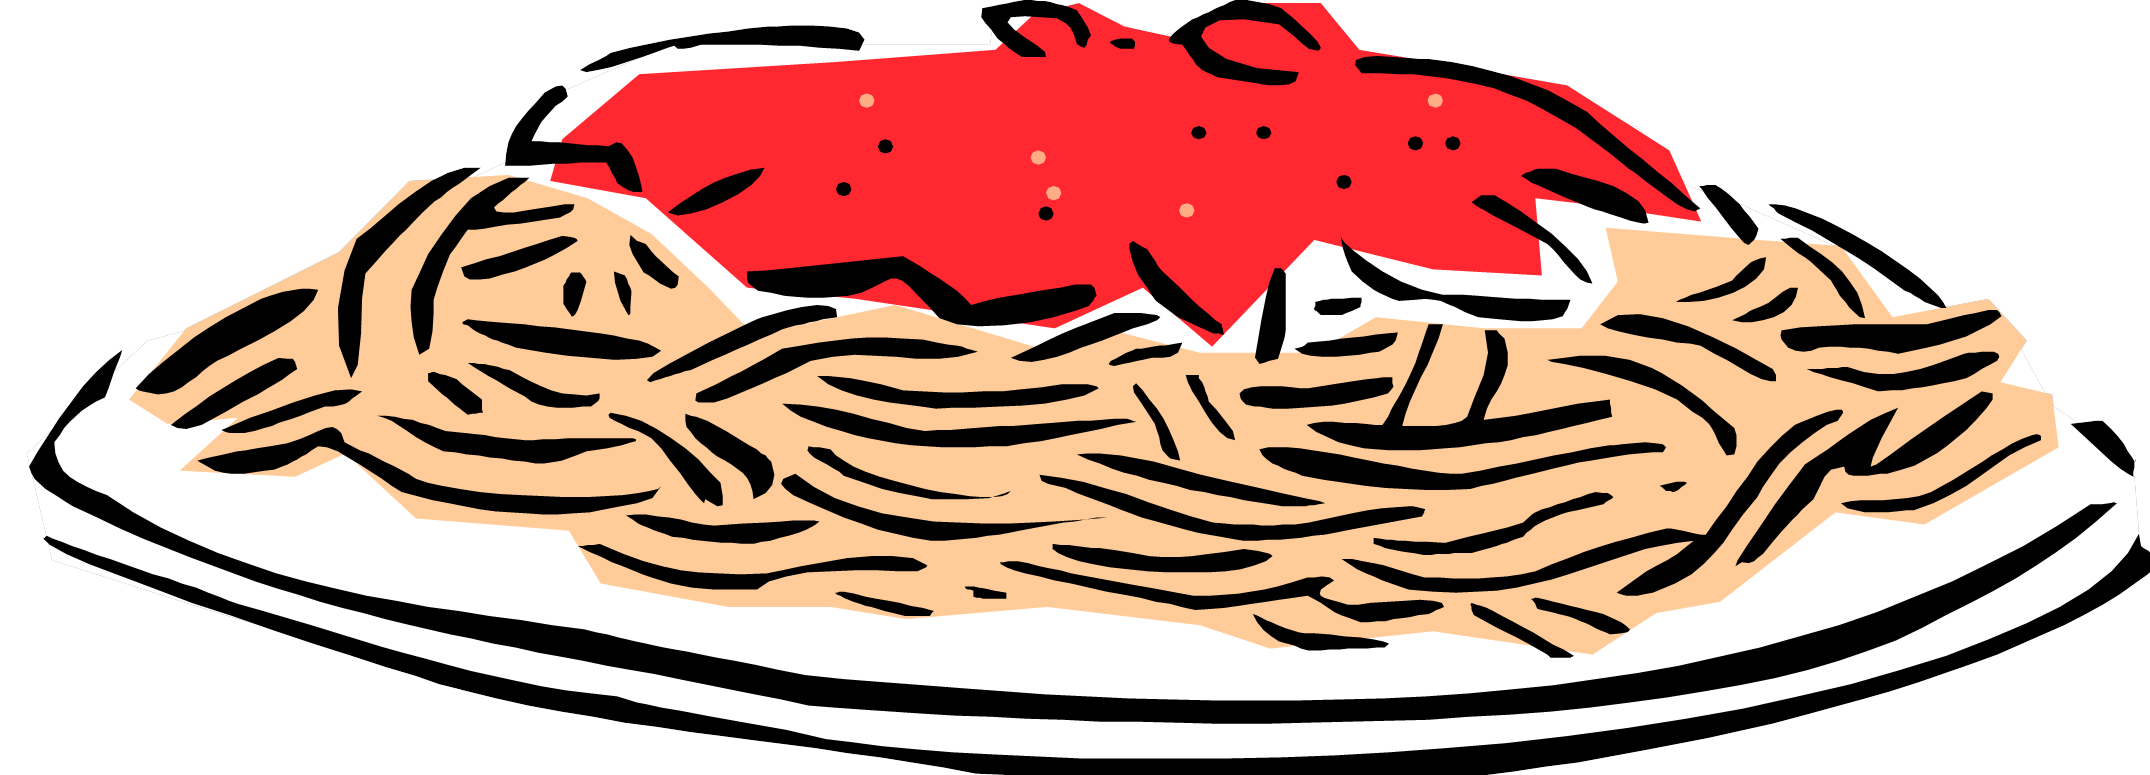 2150x775 Simple Spaghetti And Meatballs Clipart